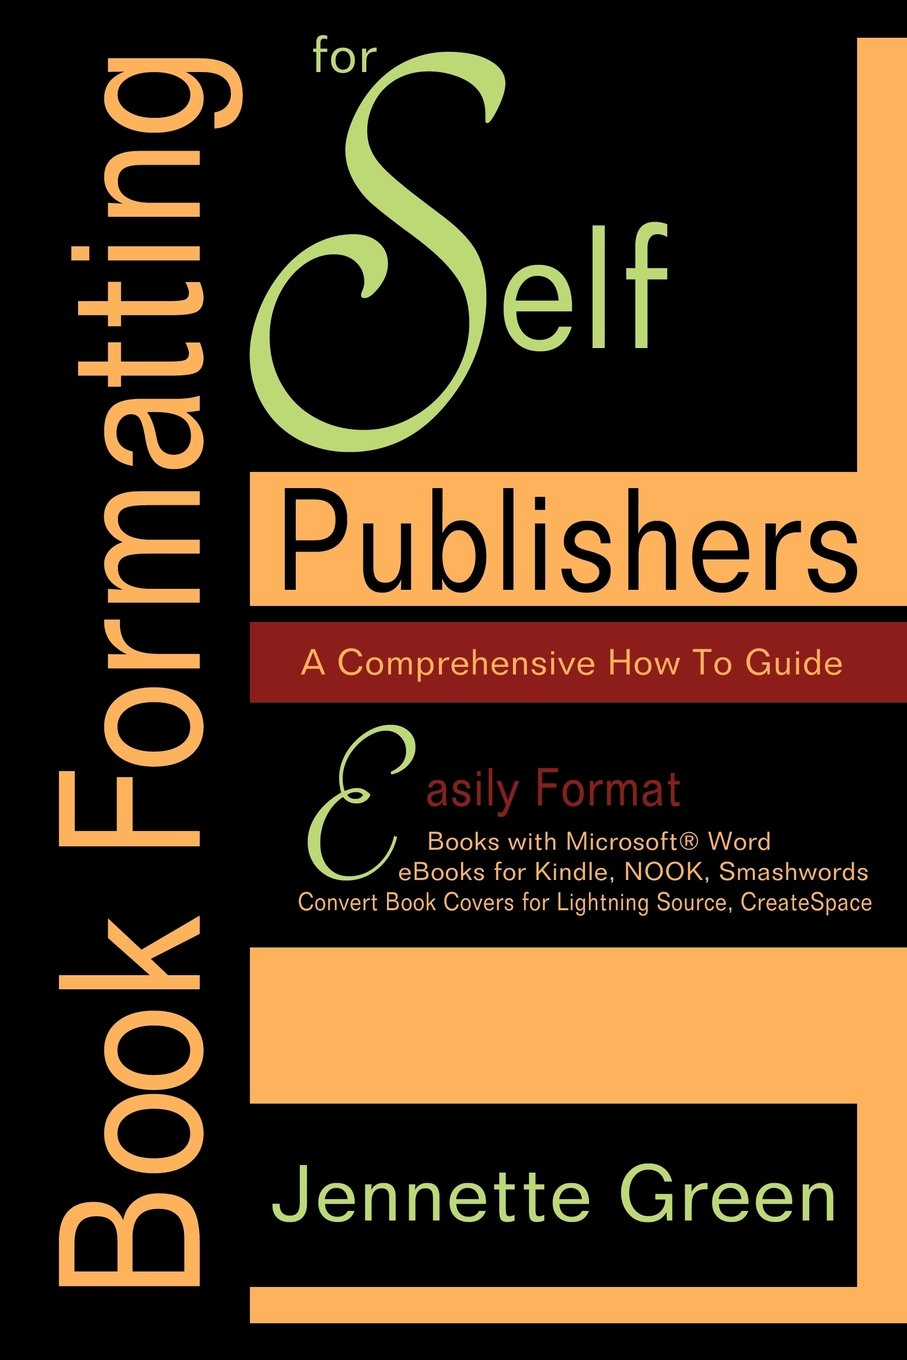 Book Formatting for Self-Publishers, a Comprehensive How-To Guide ...